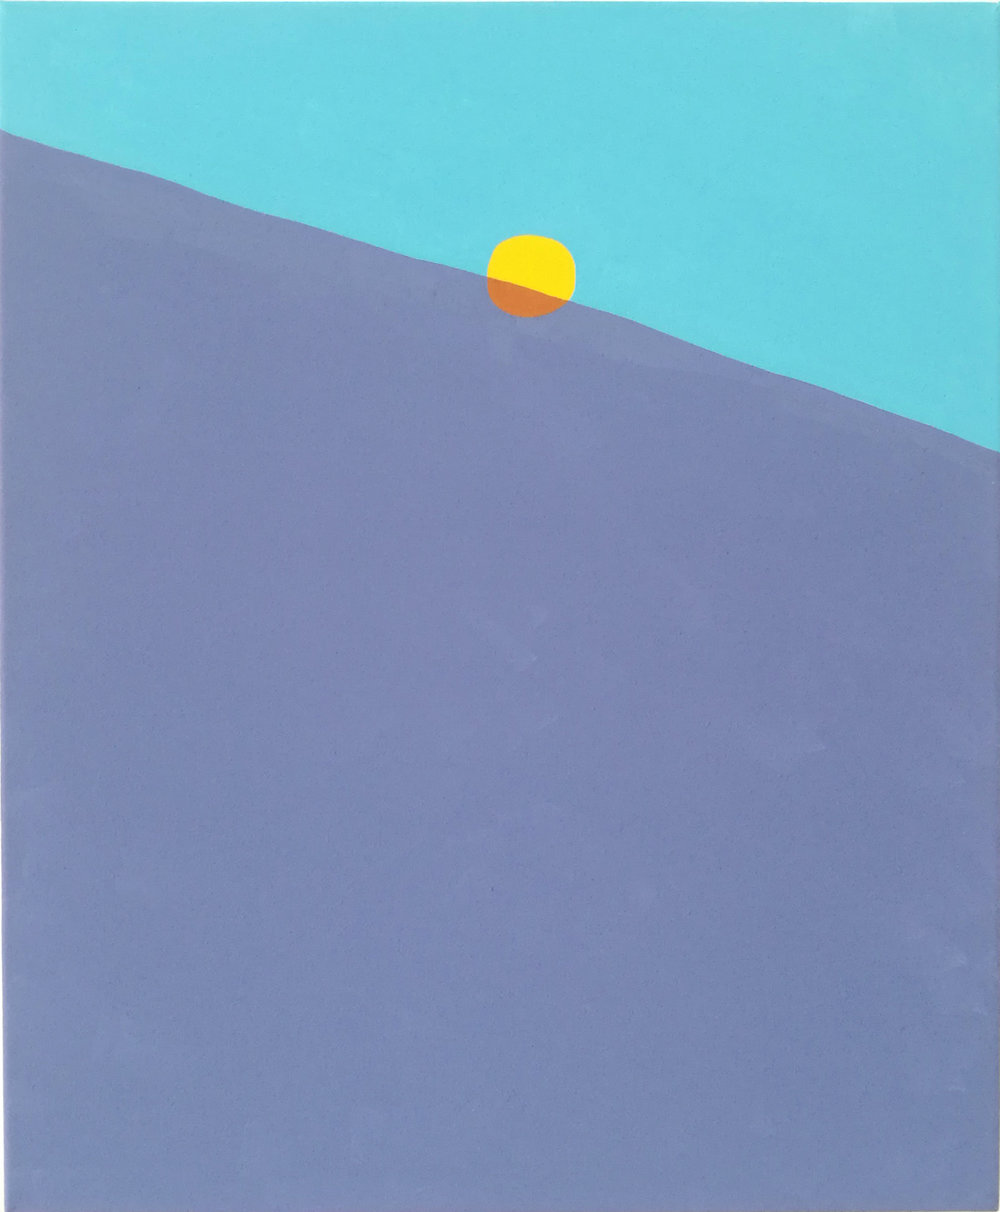 Peter McDonald_Sun 2_Acrylic gouache on canvas_50x40cm_2018.jpg